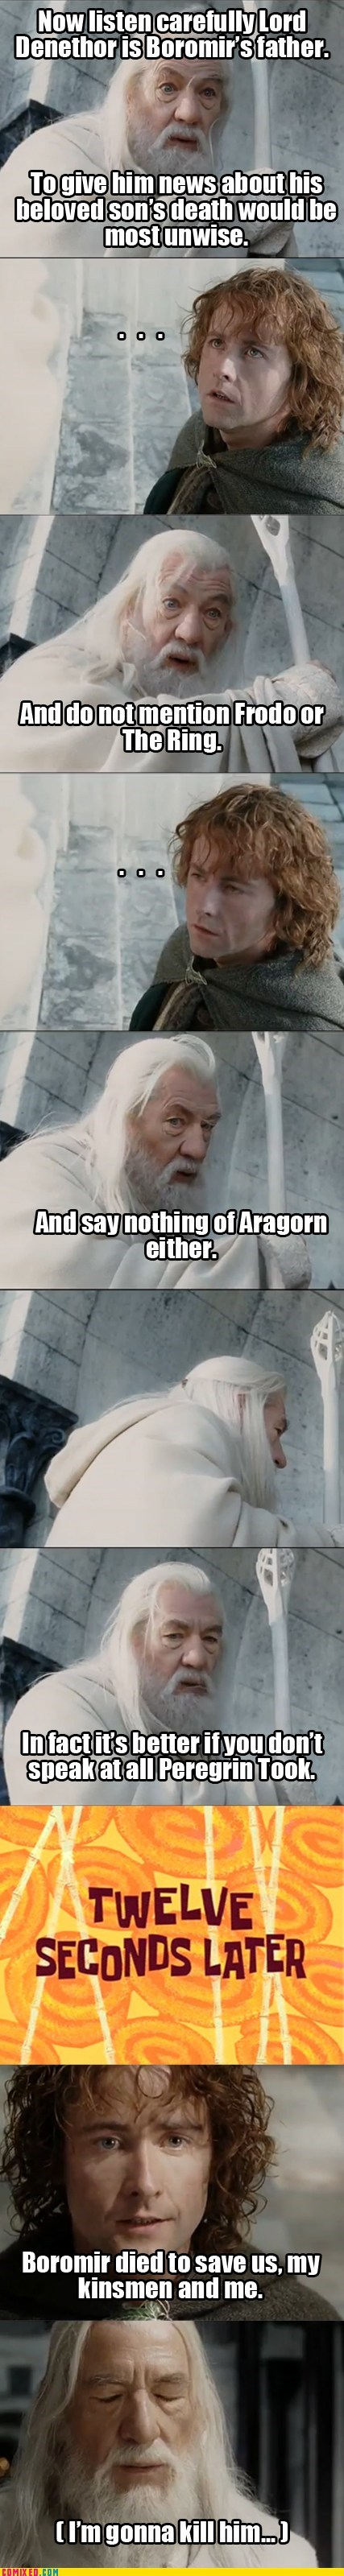 From the Movies gandalf Lord of the Rings u mad - 5655306240